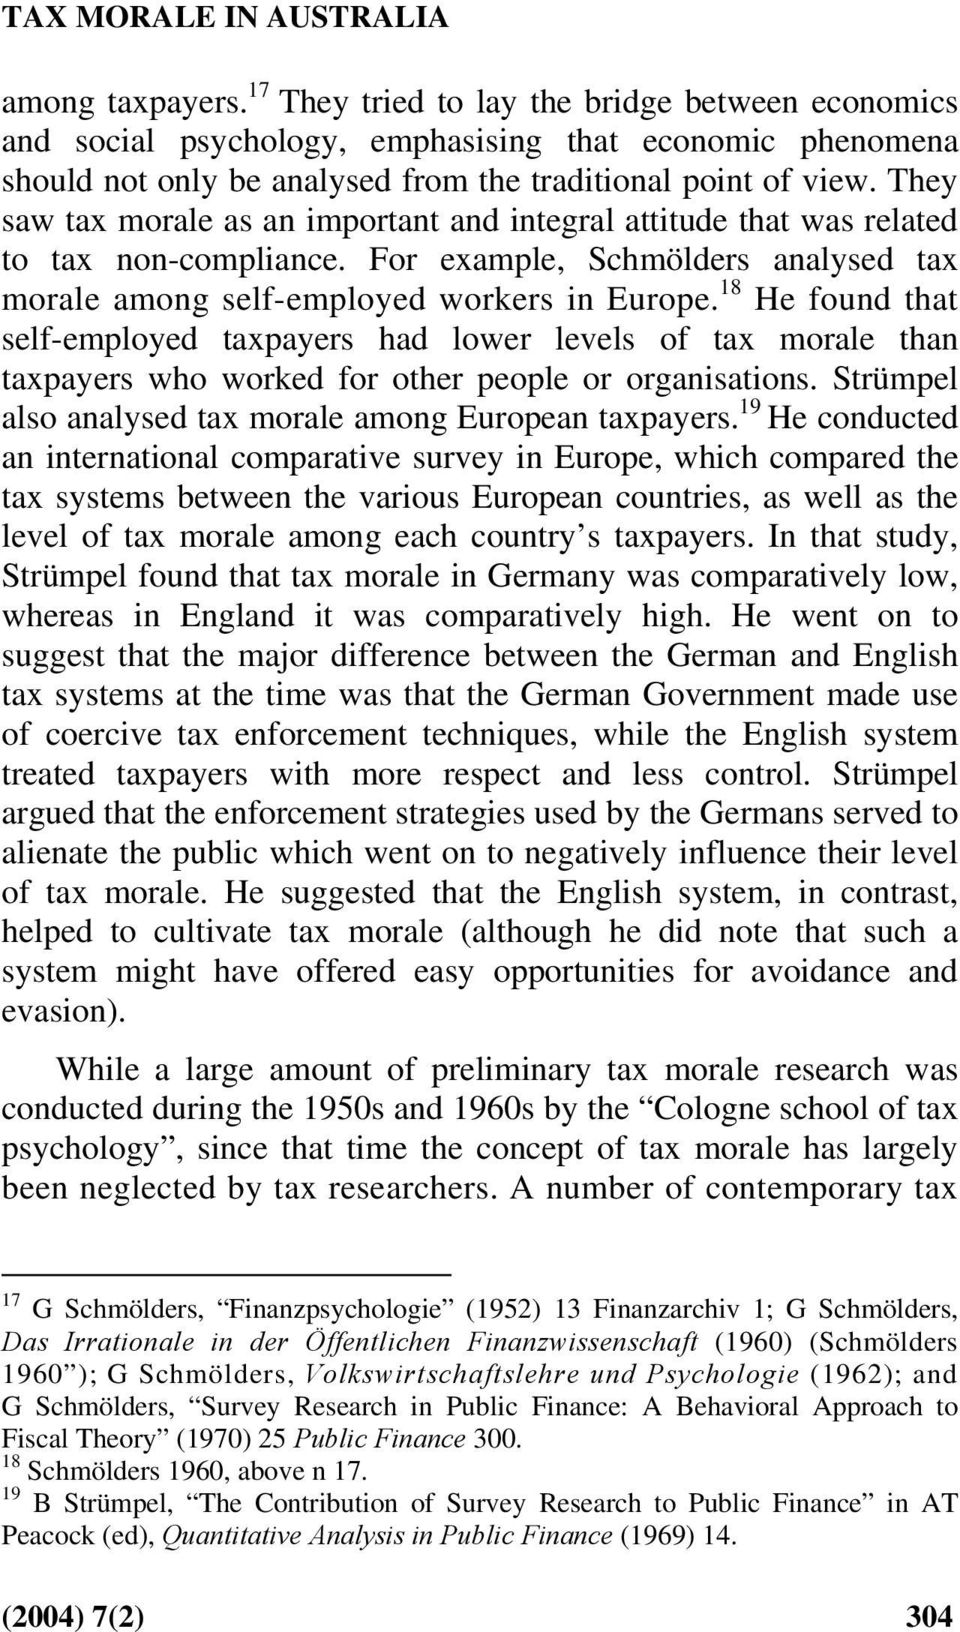 They saw tax morale as an important and integral attitude that was related to tax non-compliance. For example, Schmölders analysed tax morale among self-employed workers in Europe.